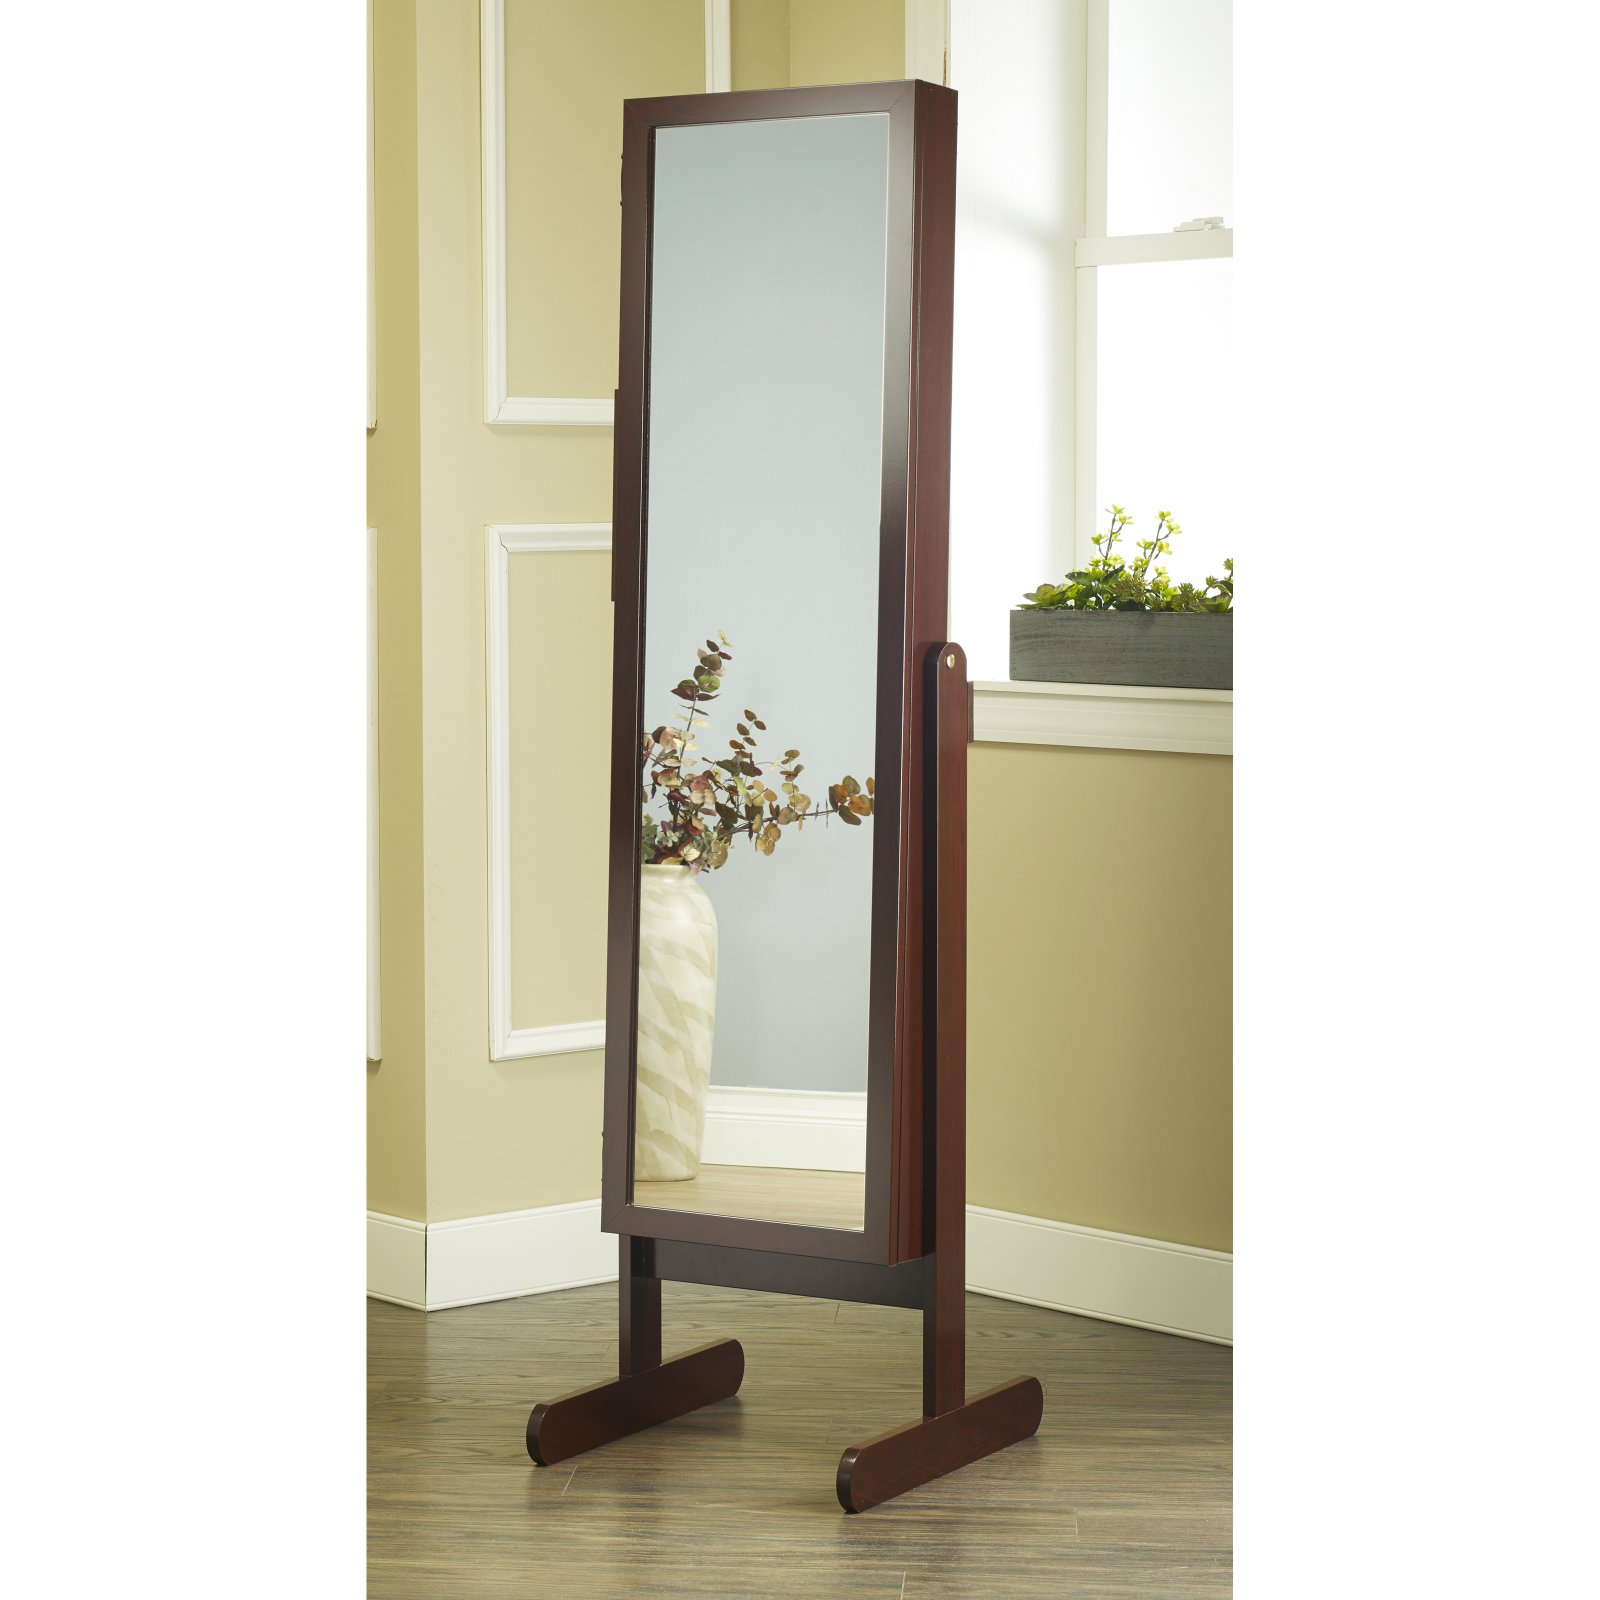 Mirrotek Free Standing Jewelry Armoire Cabinet Style Jewelry Armoire With Adjustable